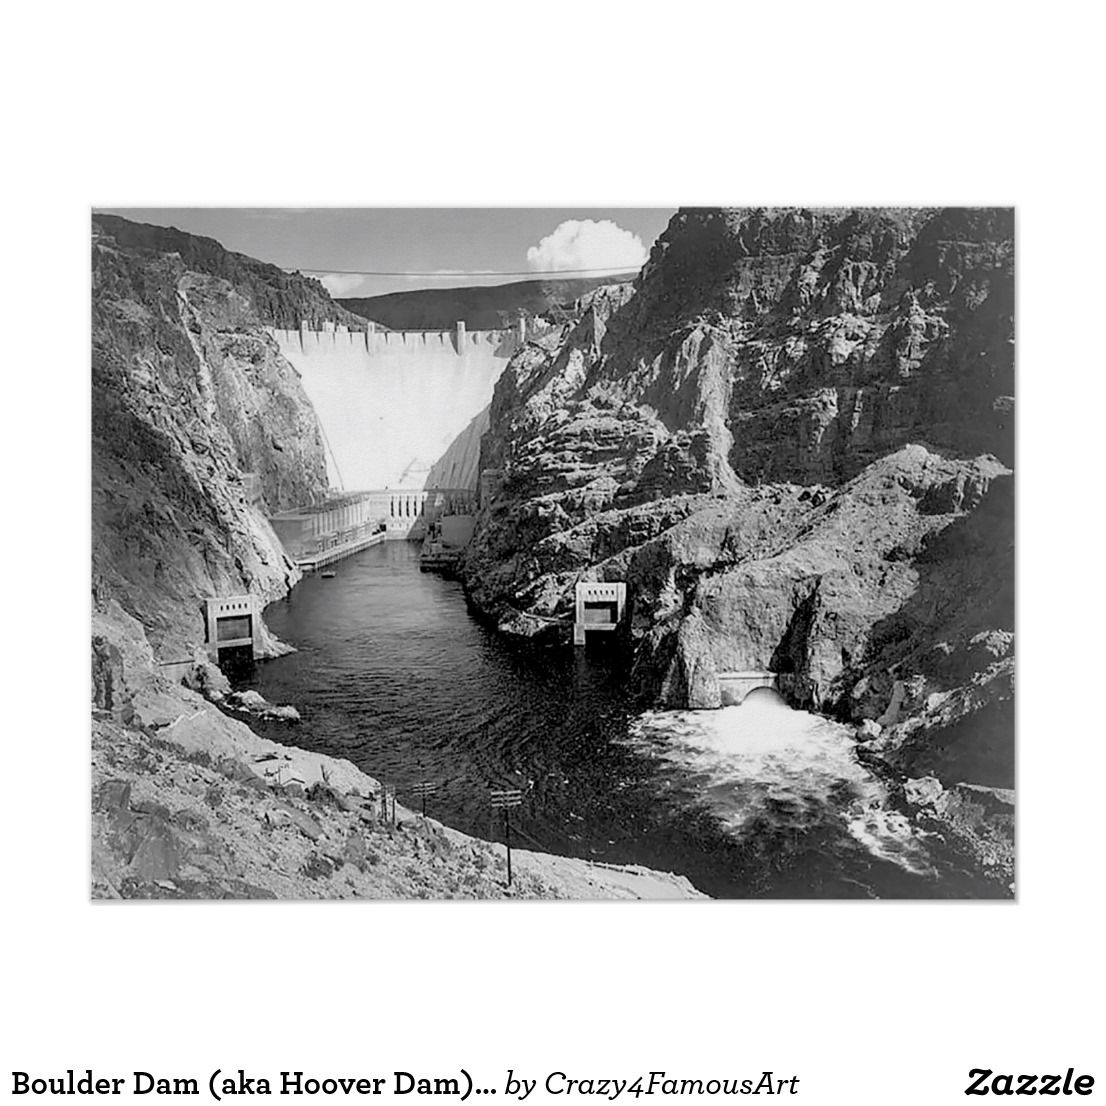 Boulder Dam (aka Hoover Dam) by Ansel Adams Poster | Top sellers on ...